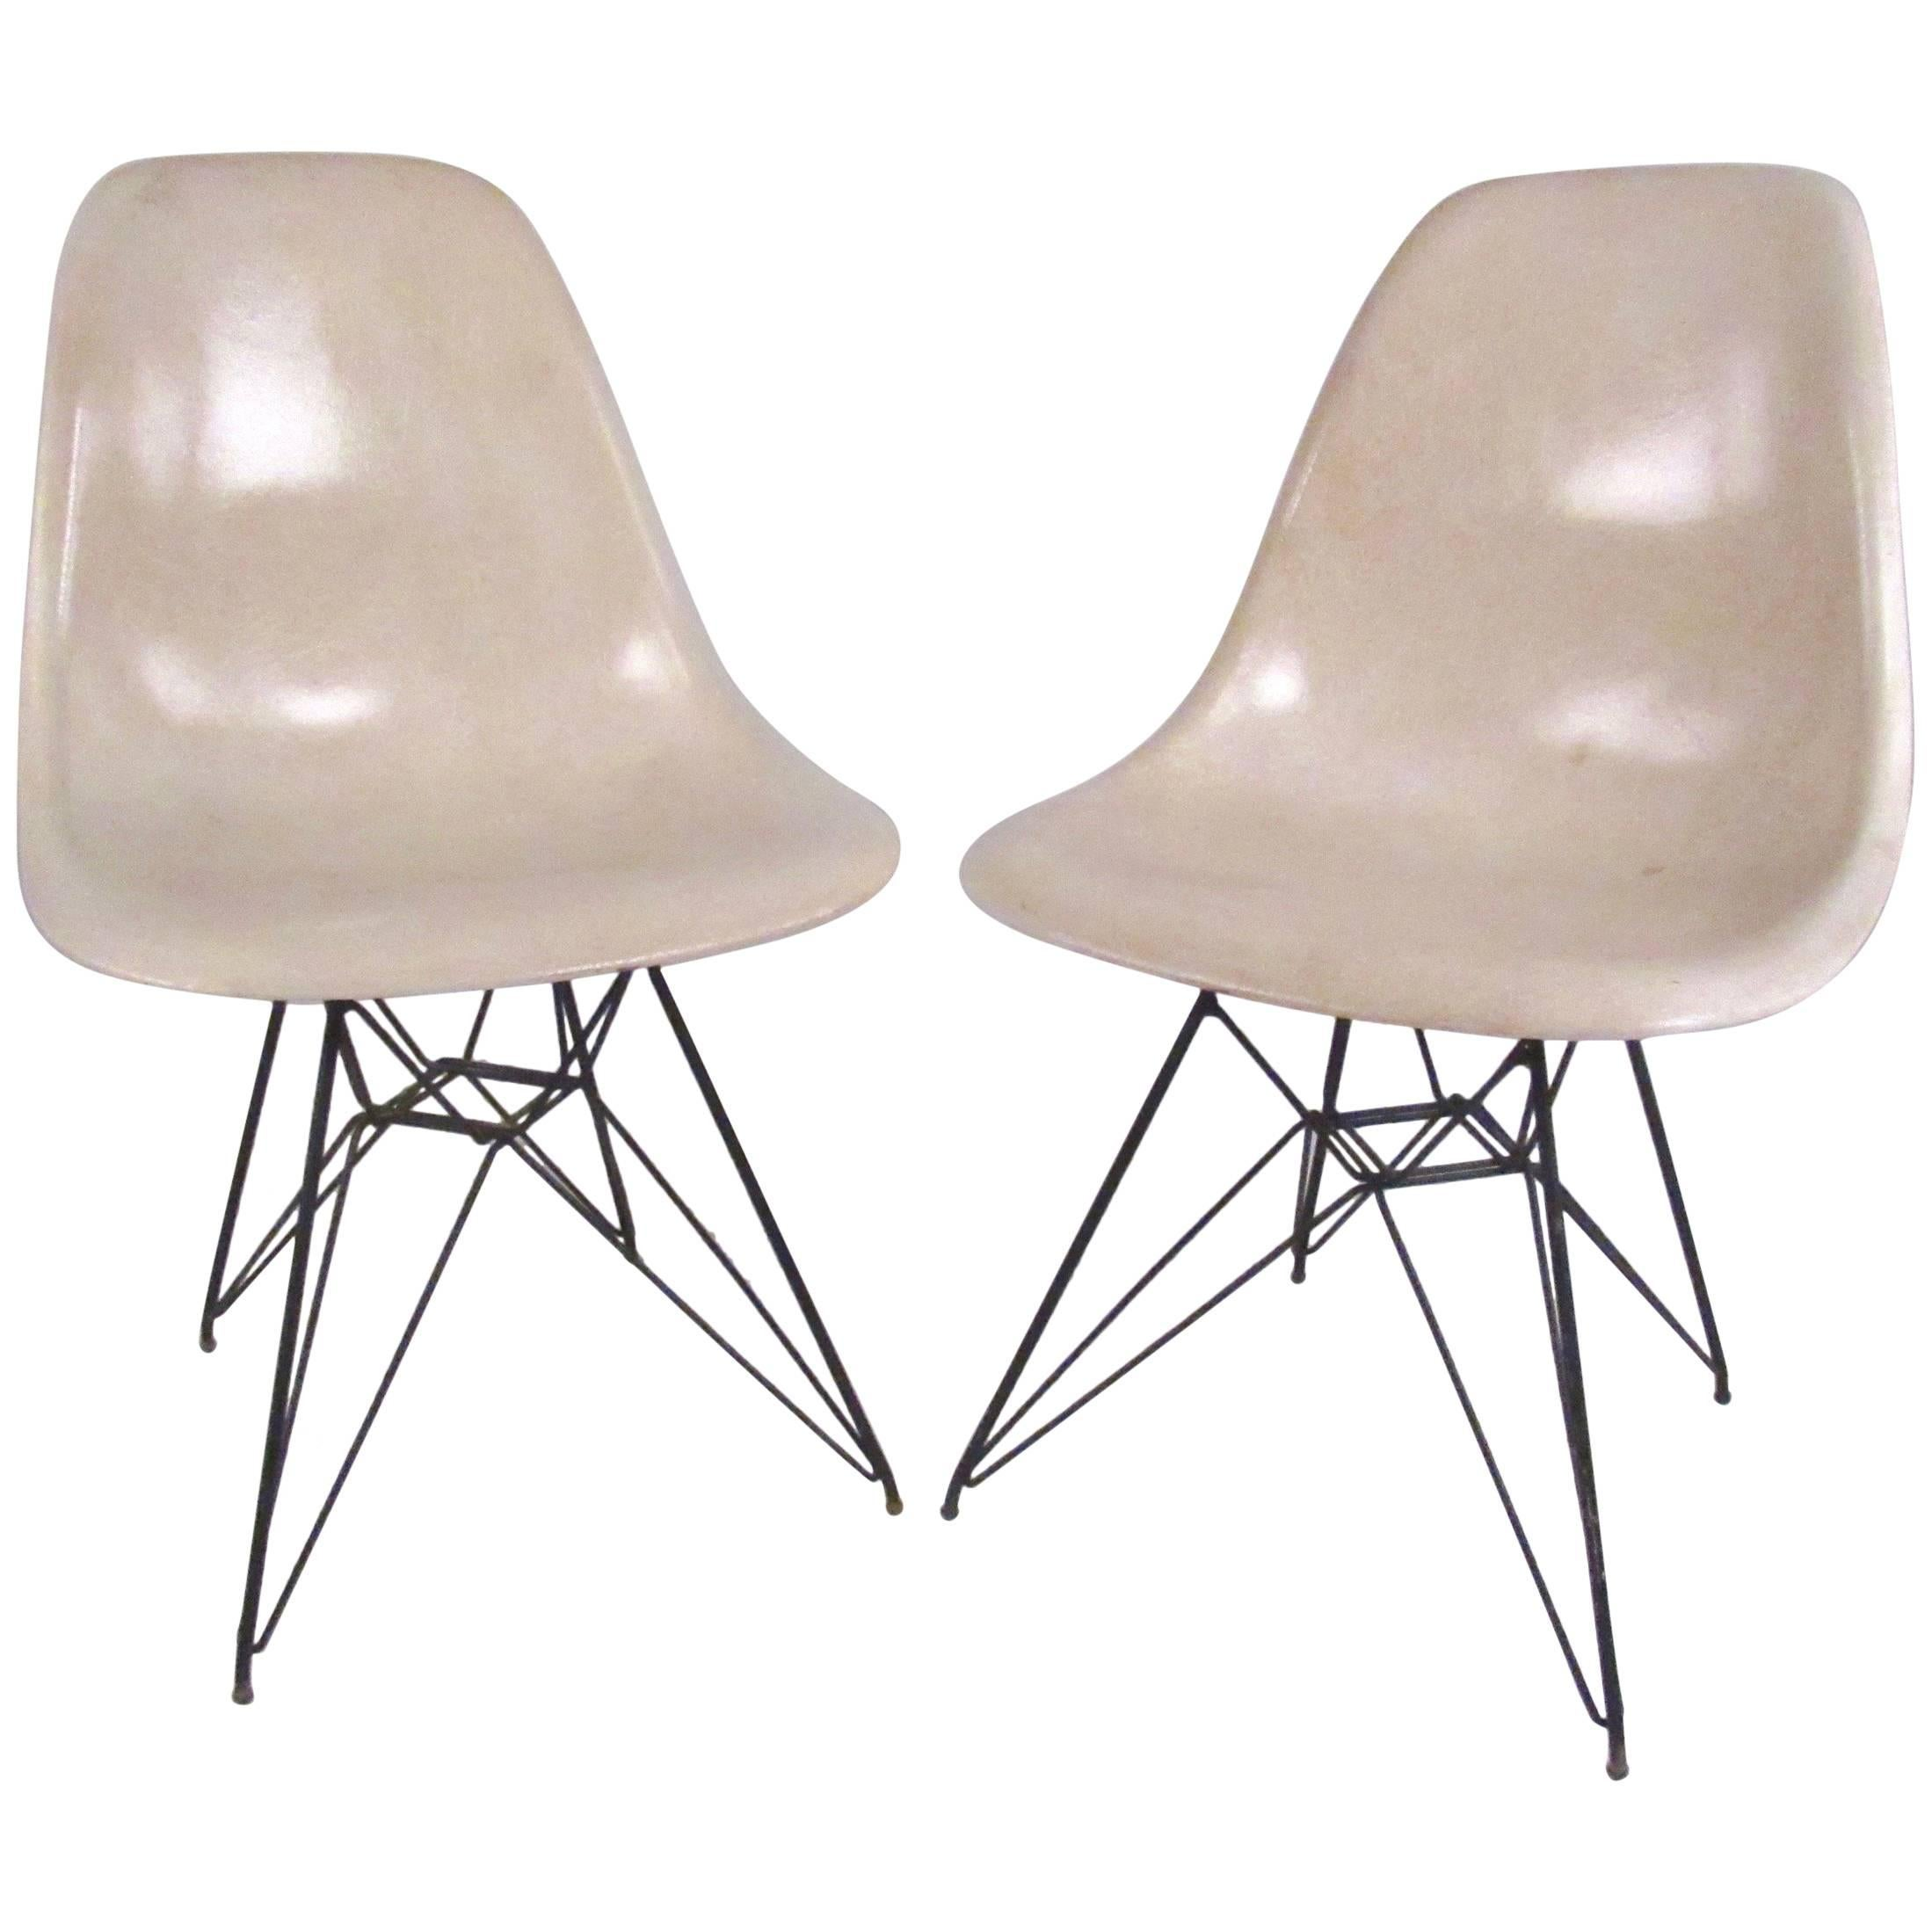 Charles Eames Eiffel Tower Fiberglass Side Chairs For Herman Miller For Sale